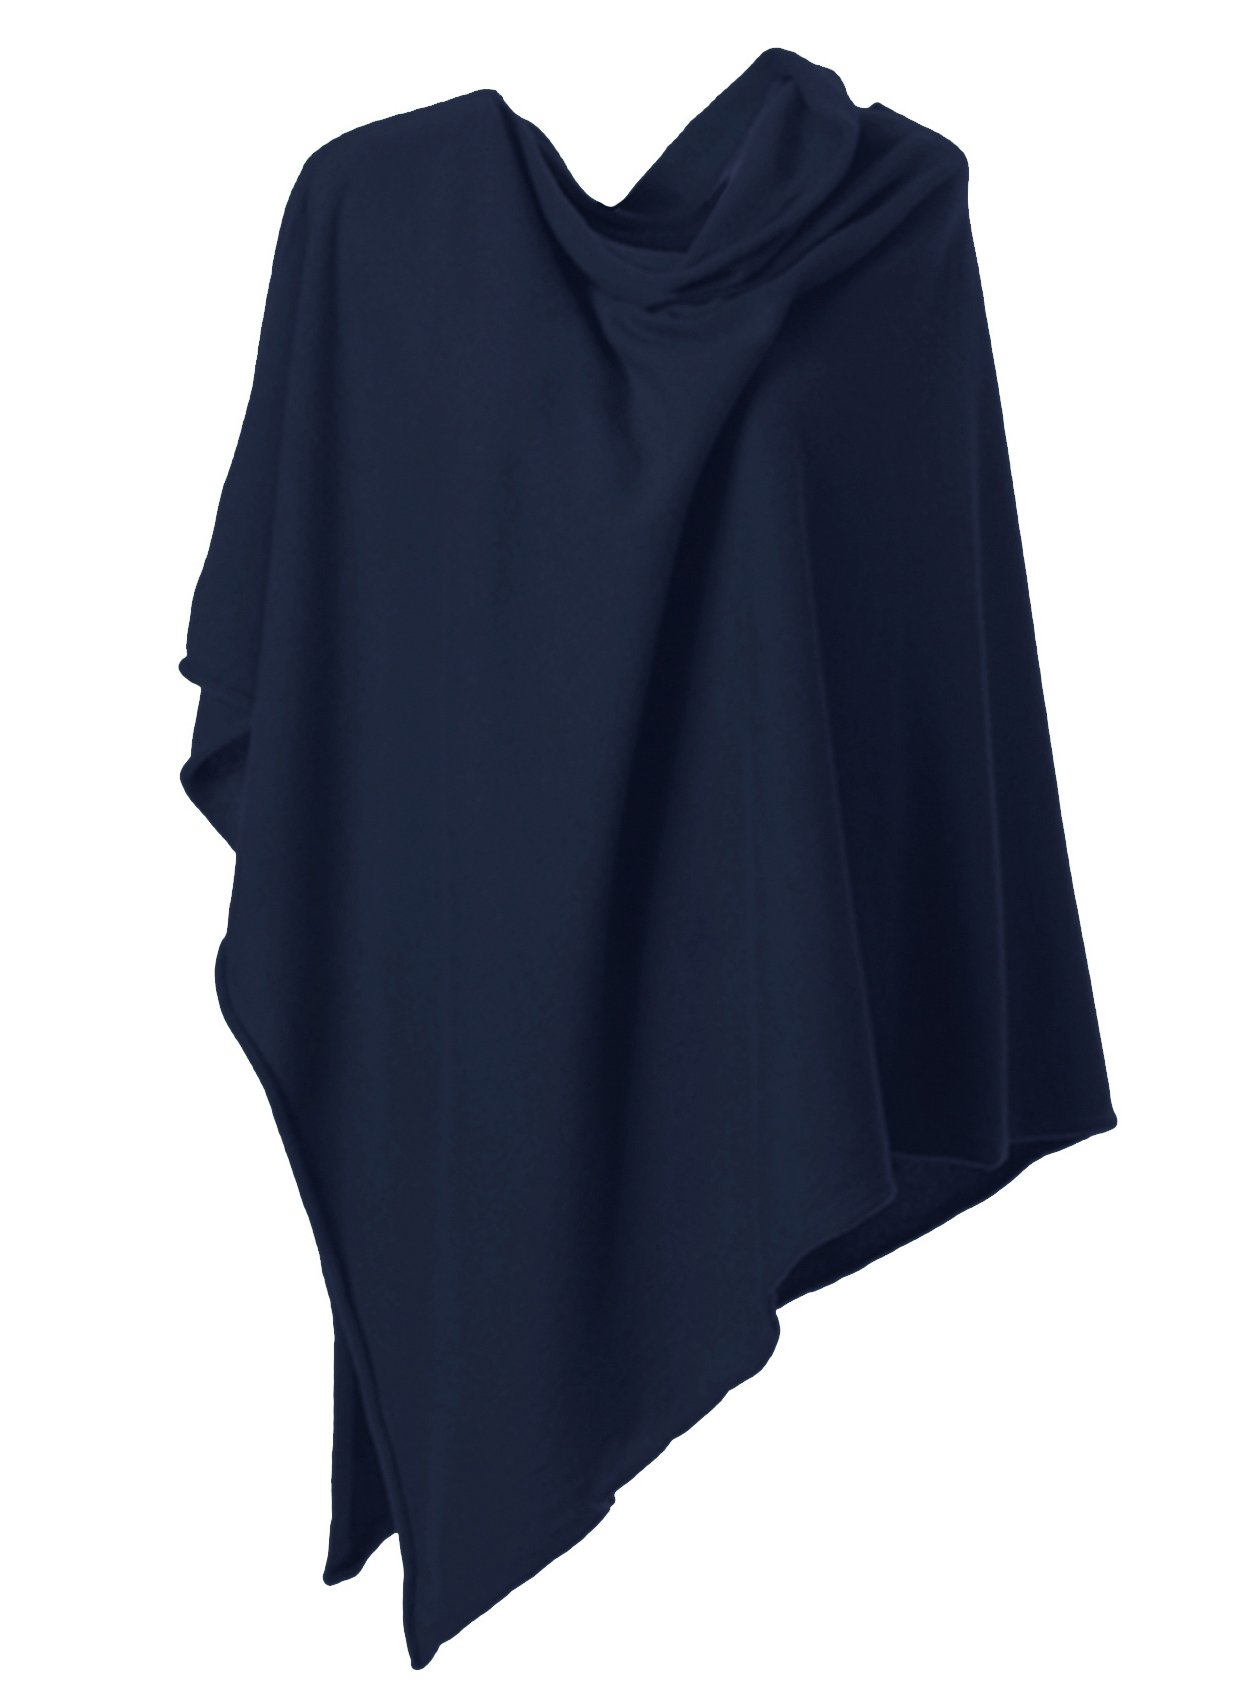 Anna Kristine Asymmetrical 100% Cashmere Draped Poncho Dress Topper - Denim